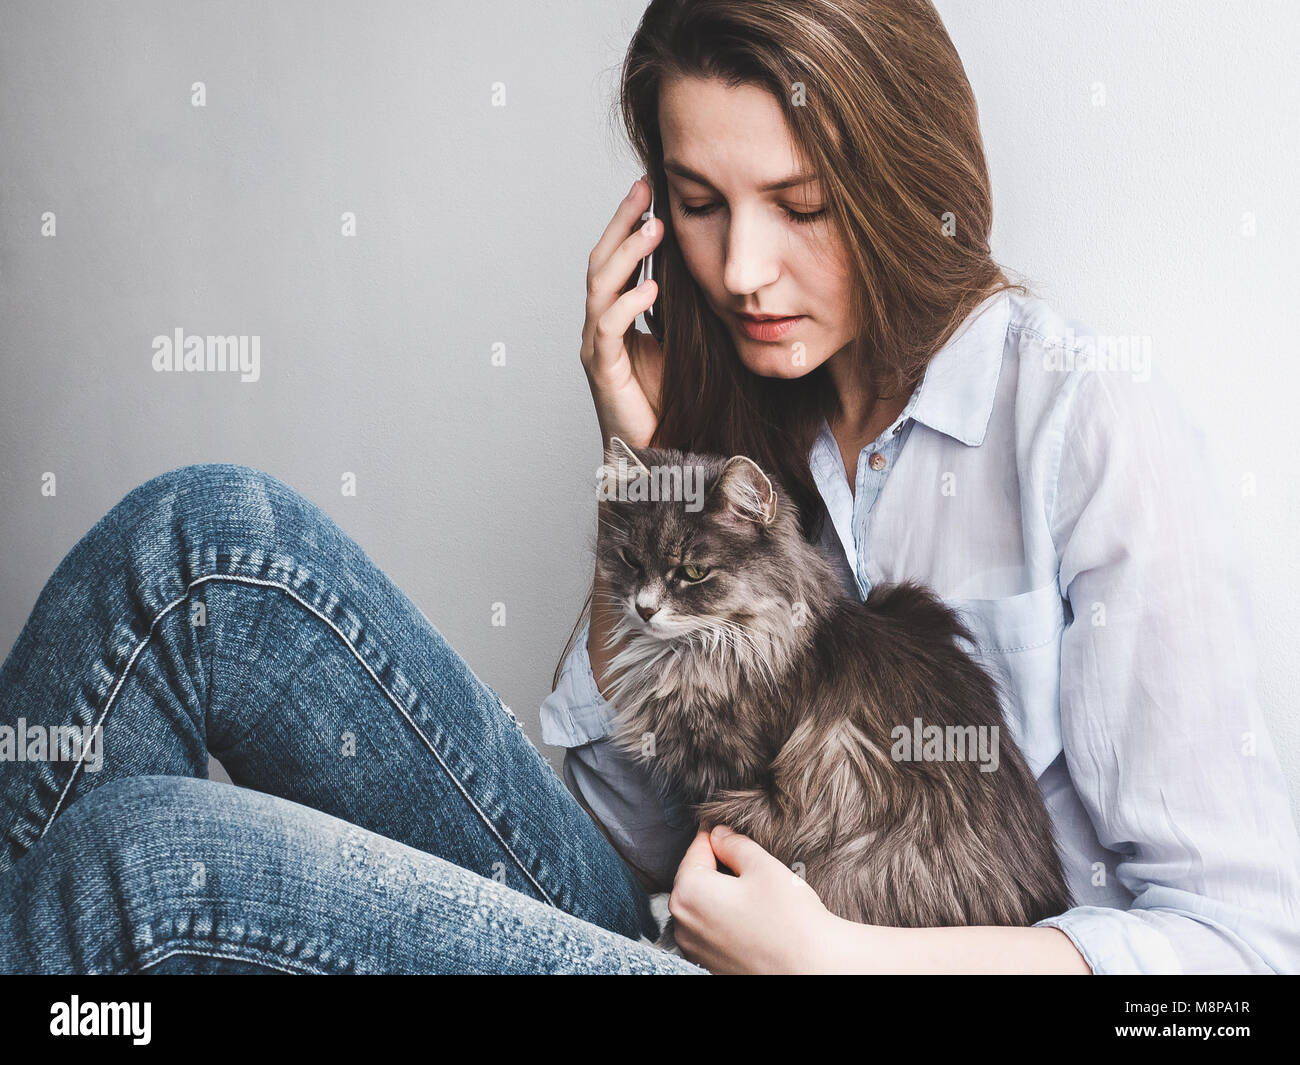 Young woman gently holding a kitten - Stock Image